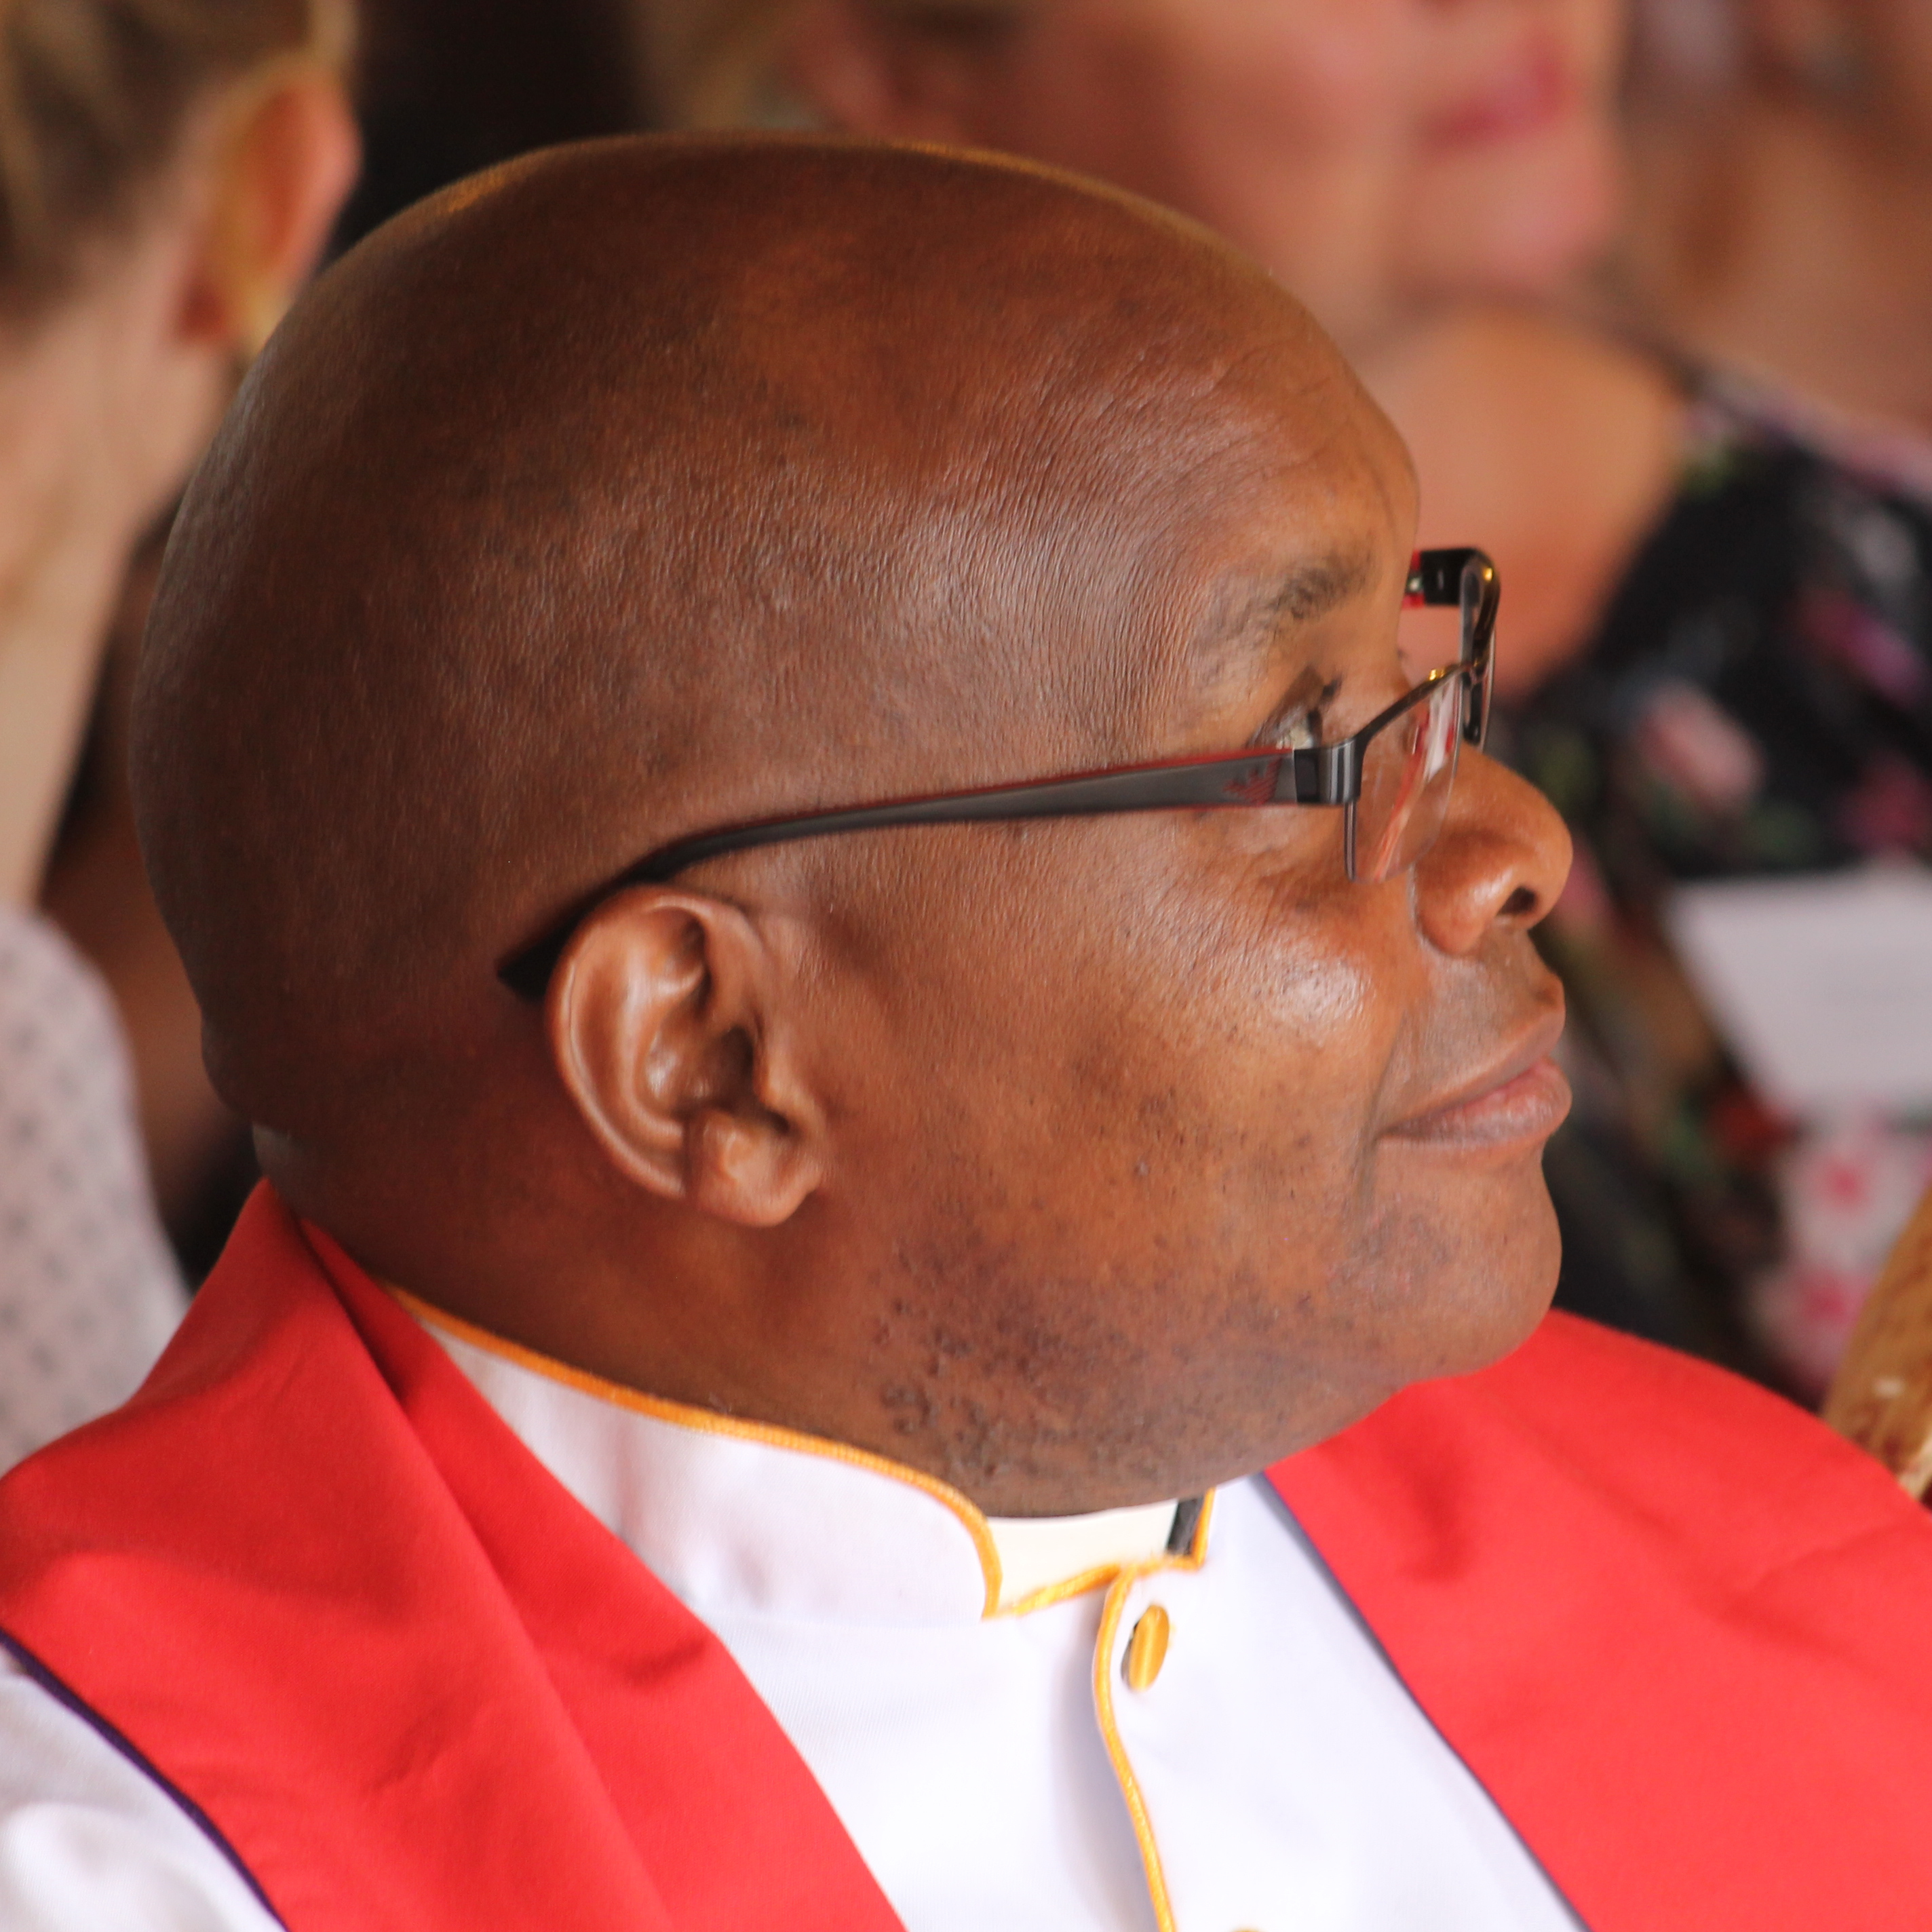 Rev. Luke Mwololo